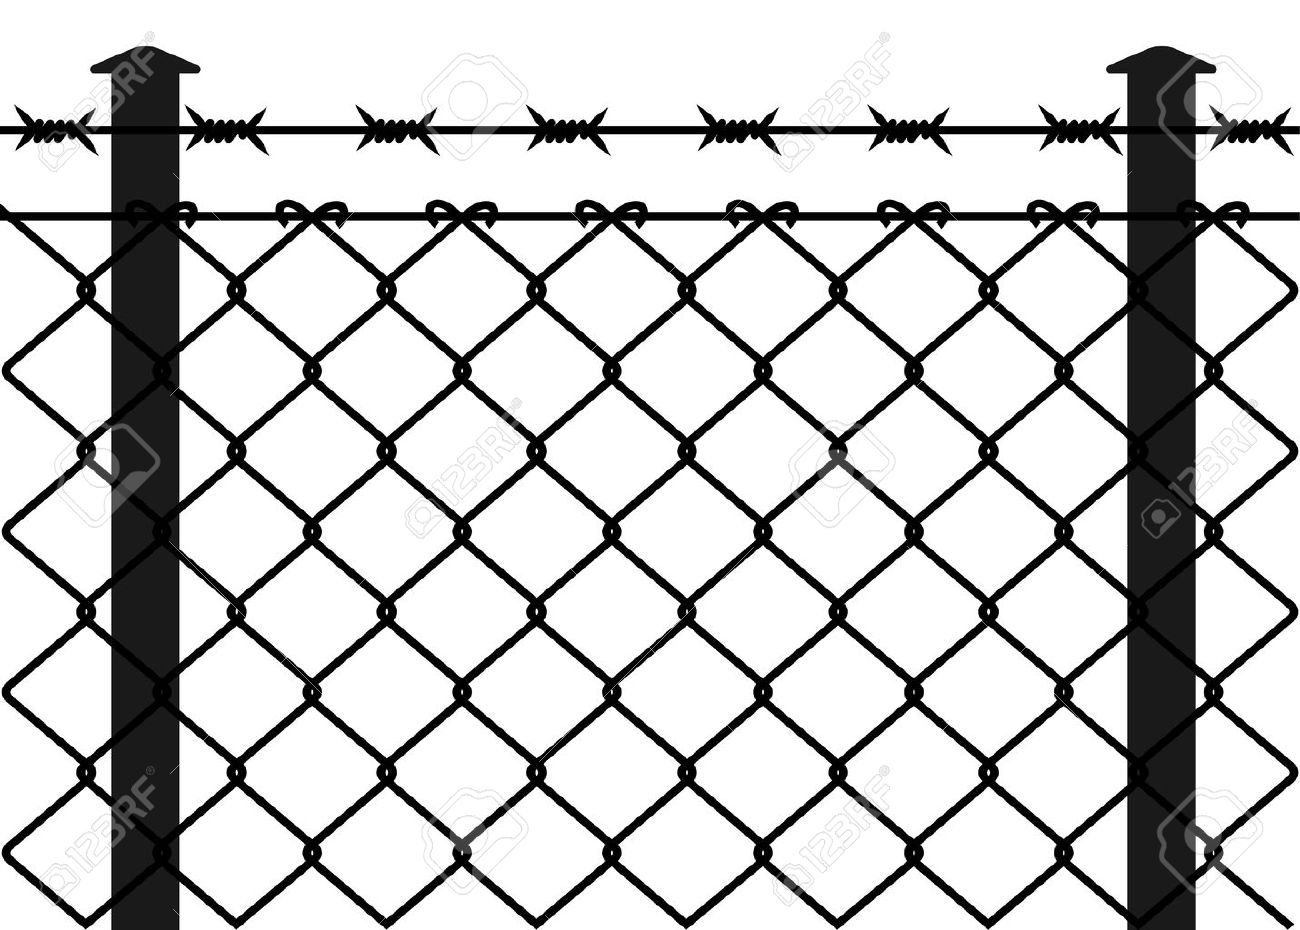 Wire Fence With Barbed Wires Vector Illustration Royalty Free